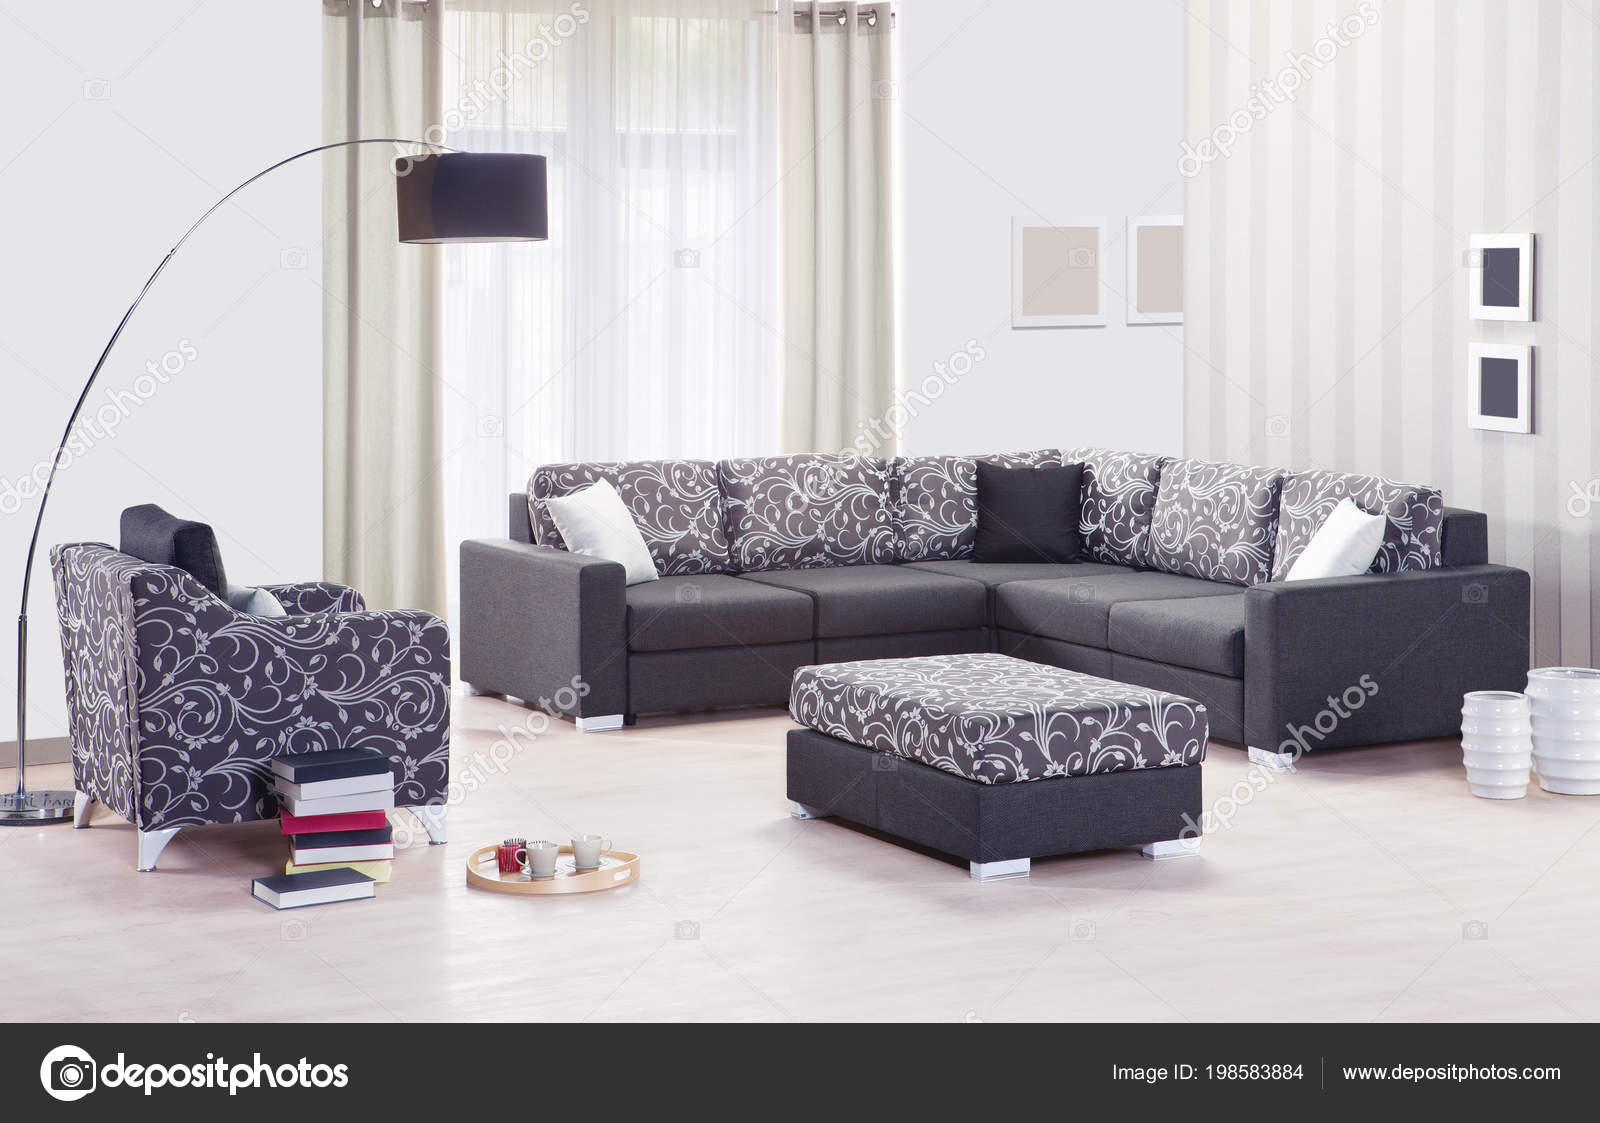 Sofa Set Images Free Download Corner Sofa Set Interior Stock Photo Saaras 198583884